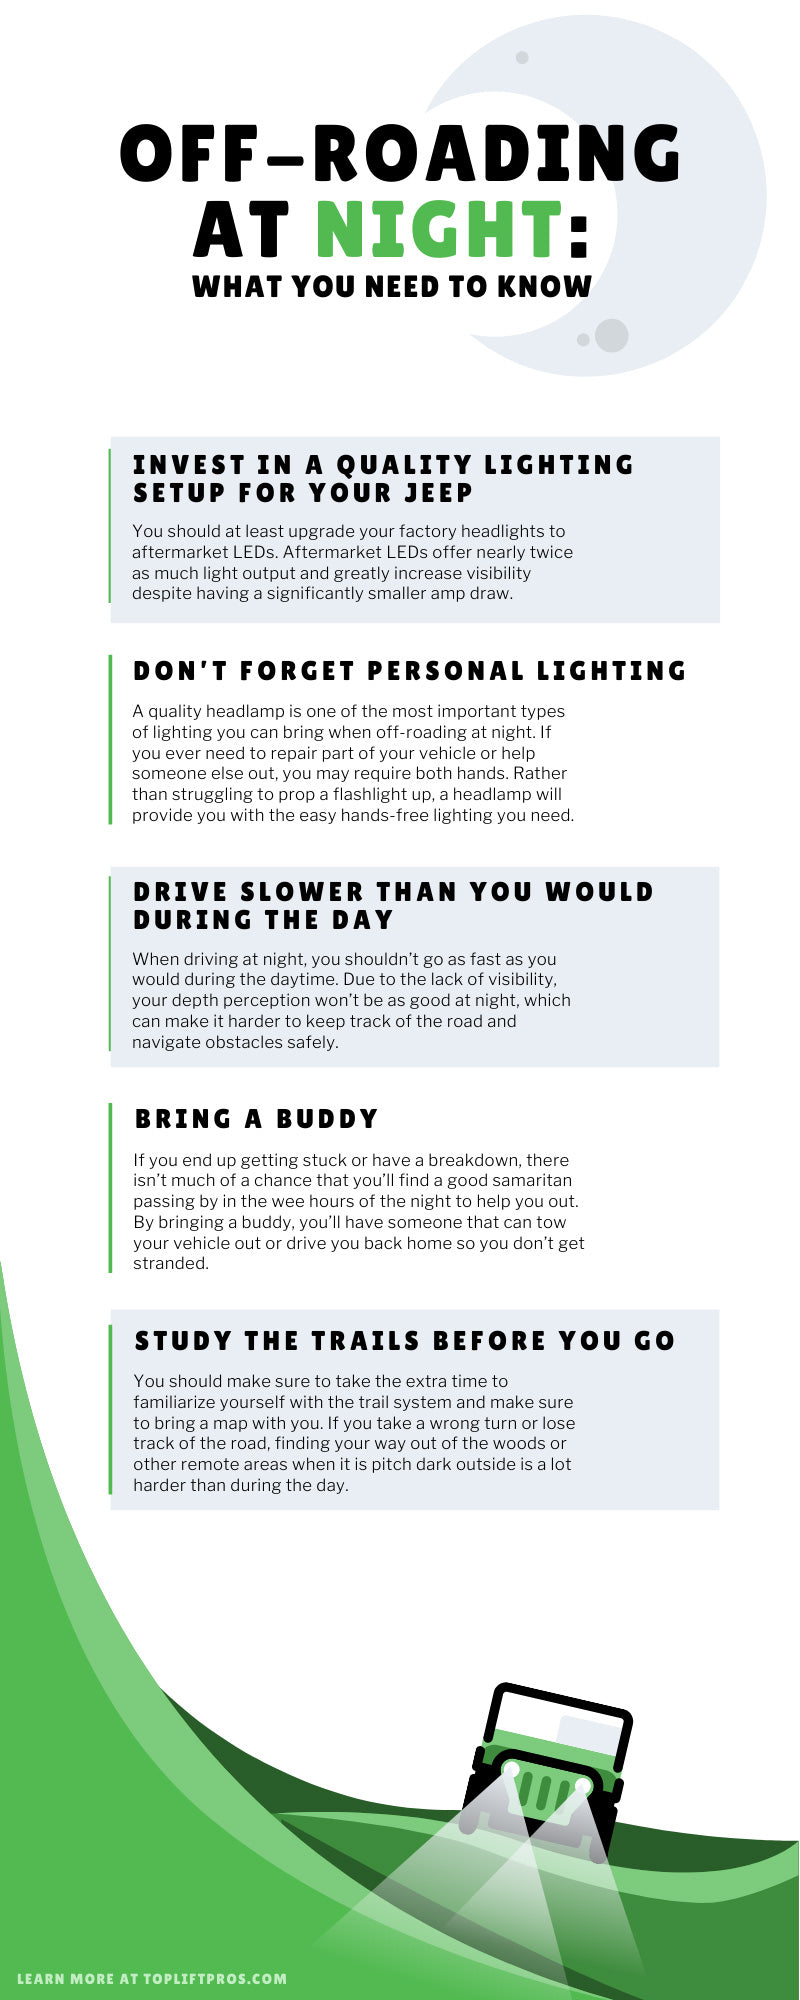 Off-Roading at Night: What You Need to Know